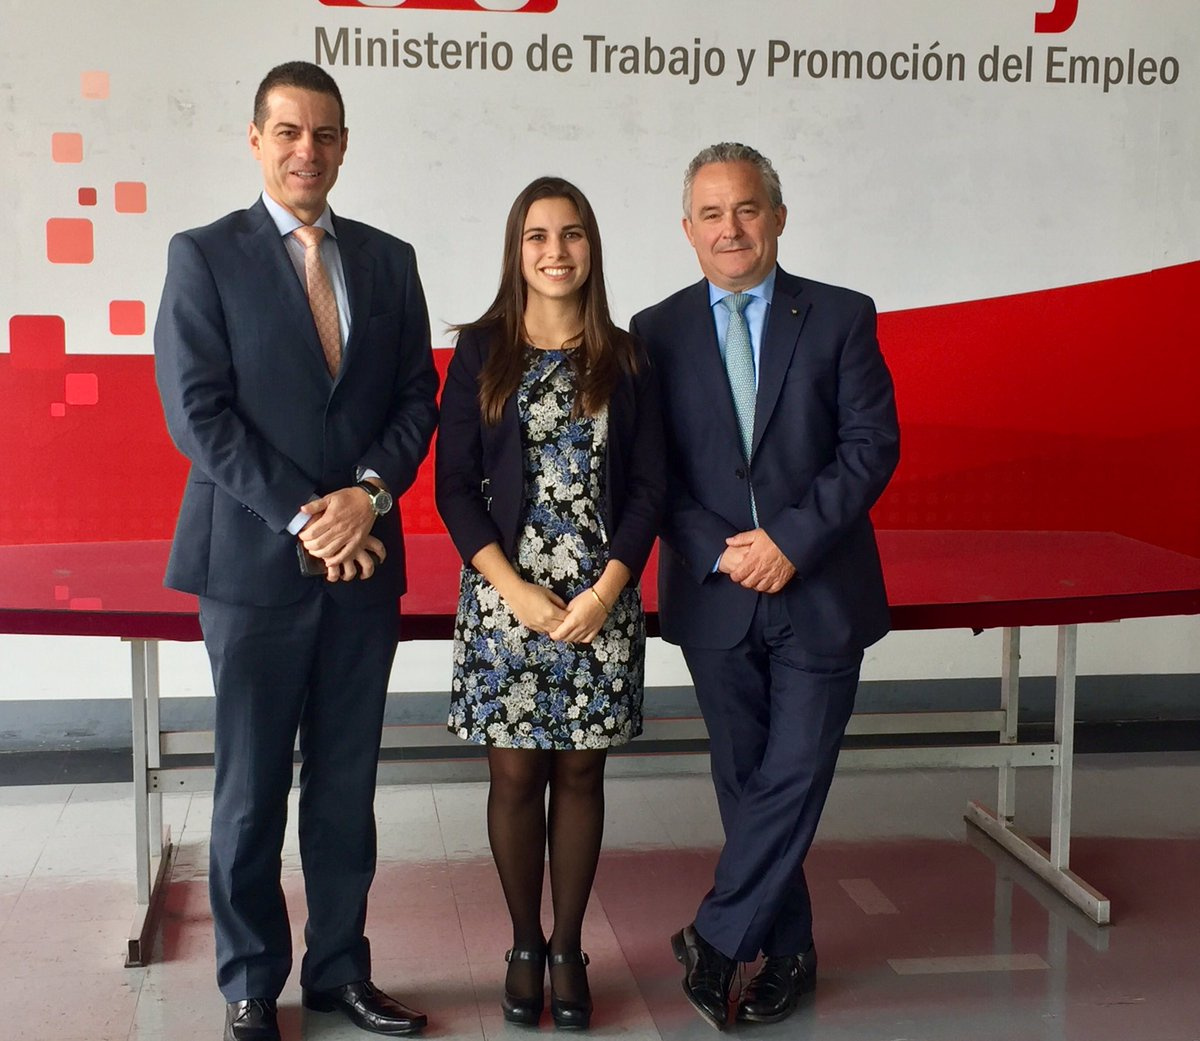 Meeting with Peru&#39;s deputy minister of labor to generate a fairer #Peru. @MTPE_Peru #ValeriaC1M #CEO1Month #CEOAttitude #Work #Forces <br>http://pic.twitter.com/ERlsQYv9Vc